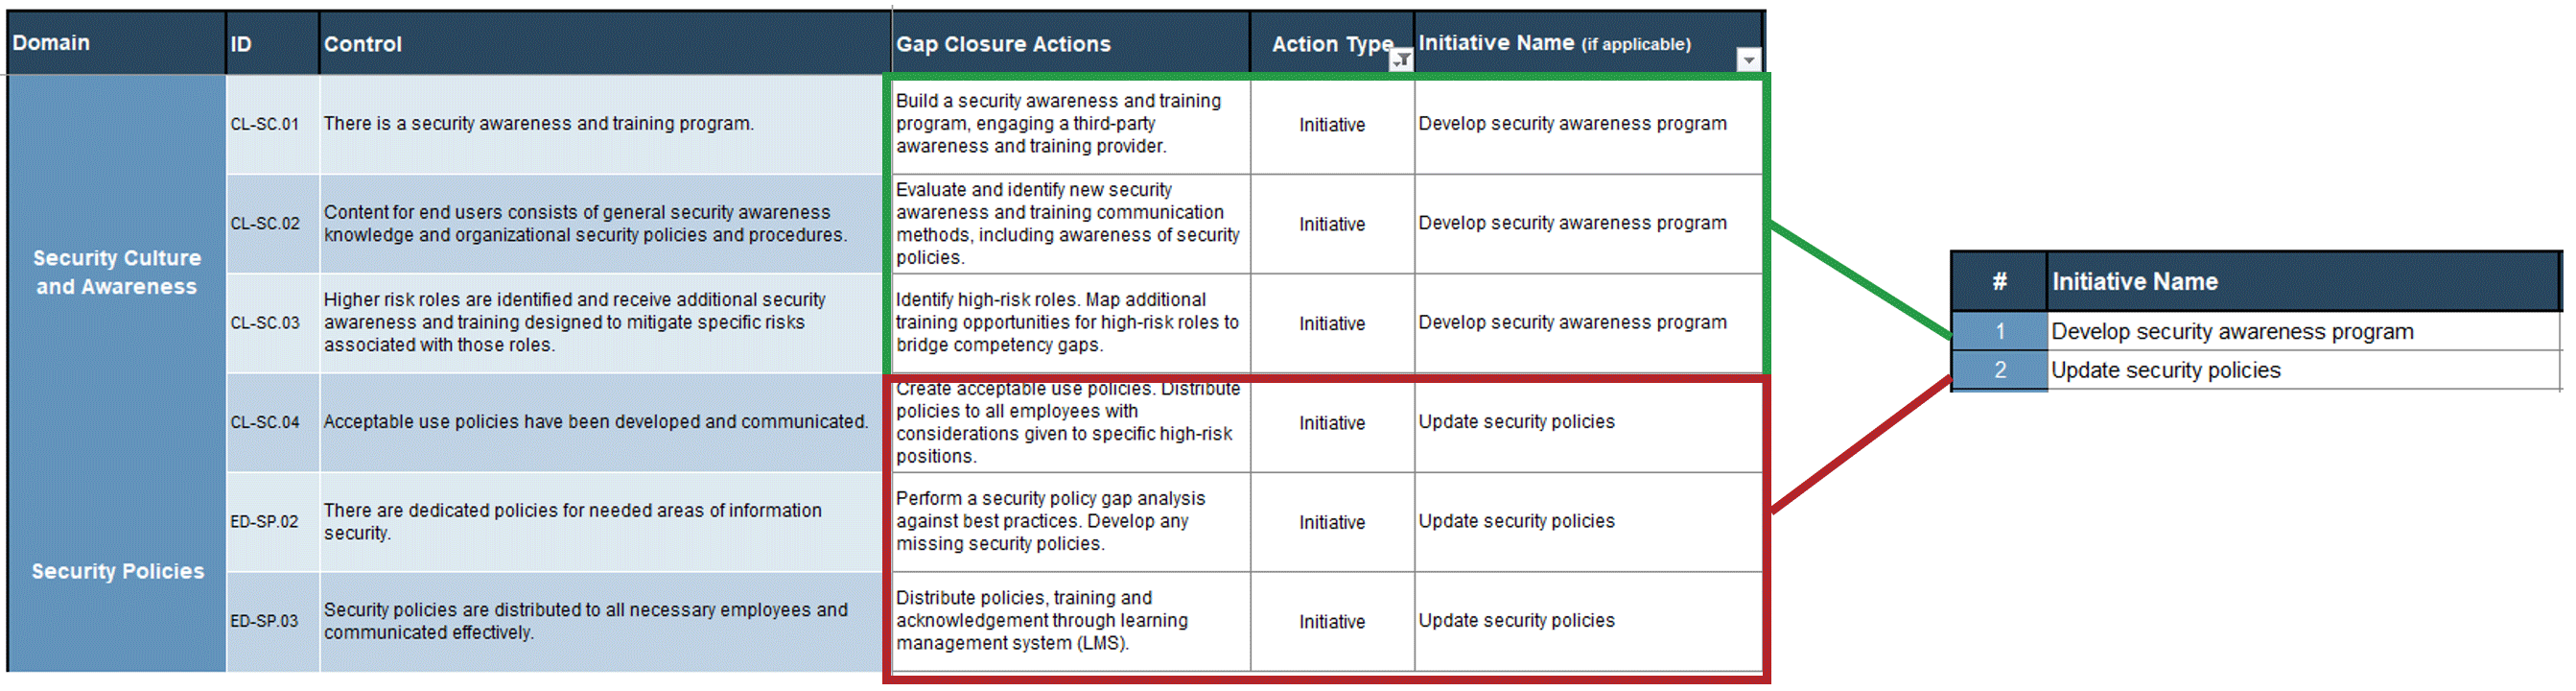 A screenshot showing how six sample gap closure actions can be distilled into two gap closure initiatives. Part of the 'Information Security Gap Analysis Tool.'